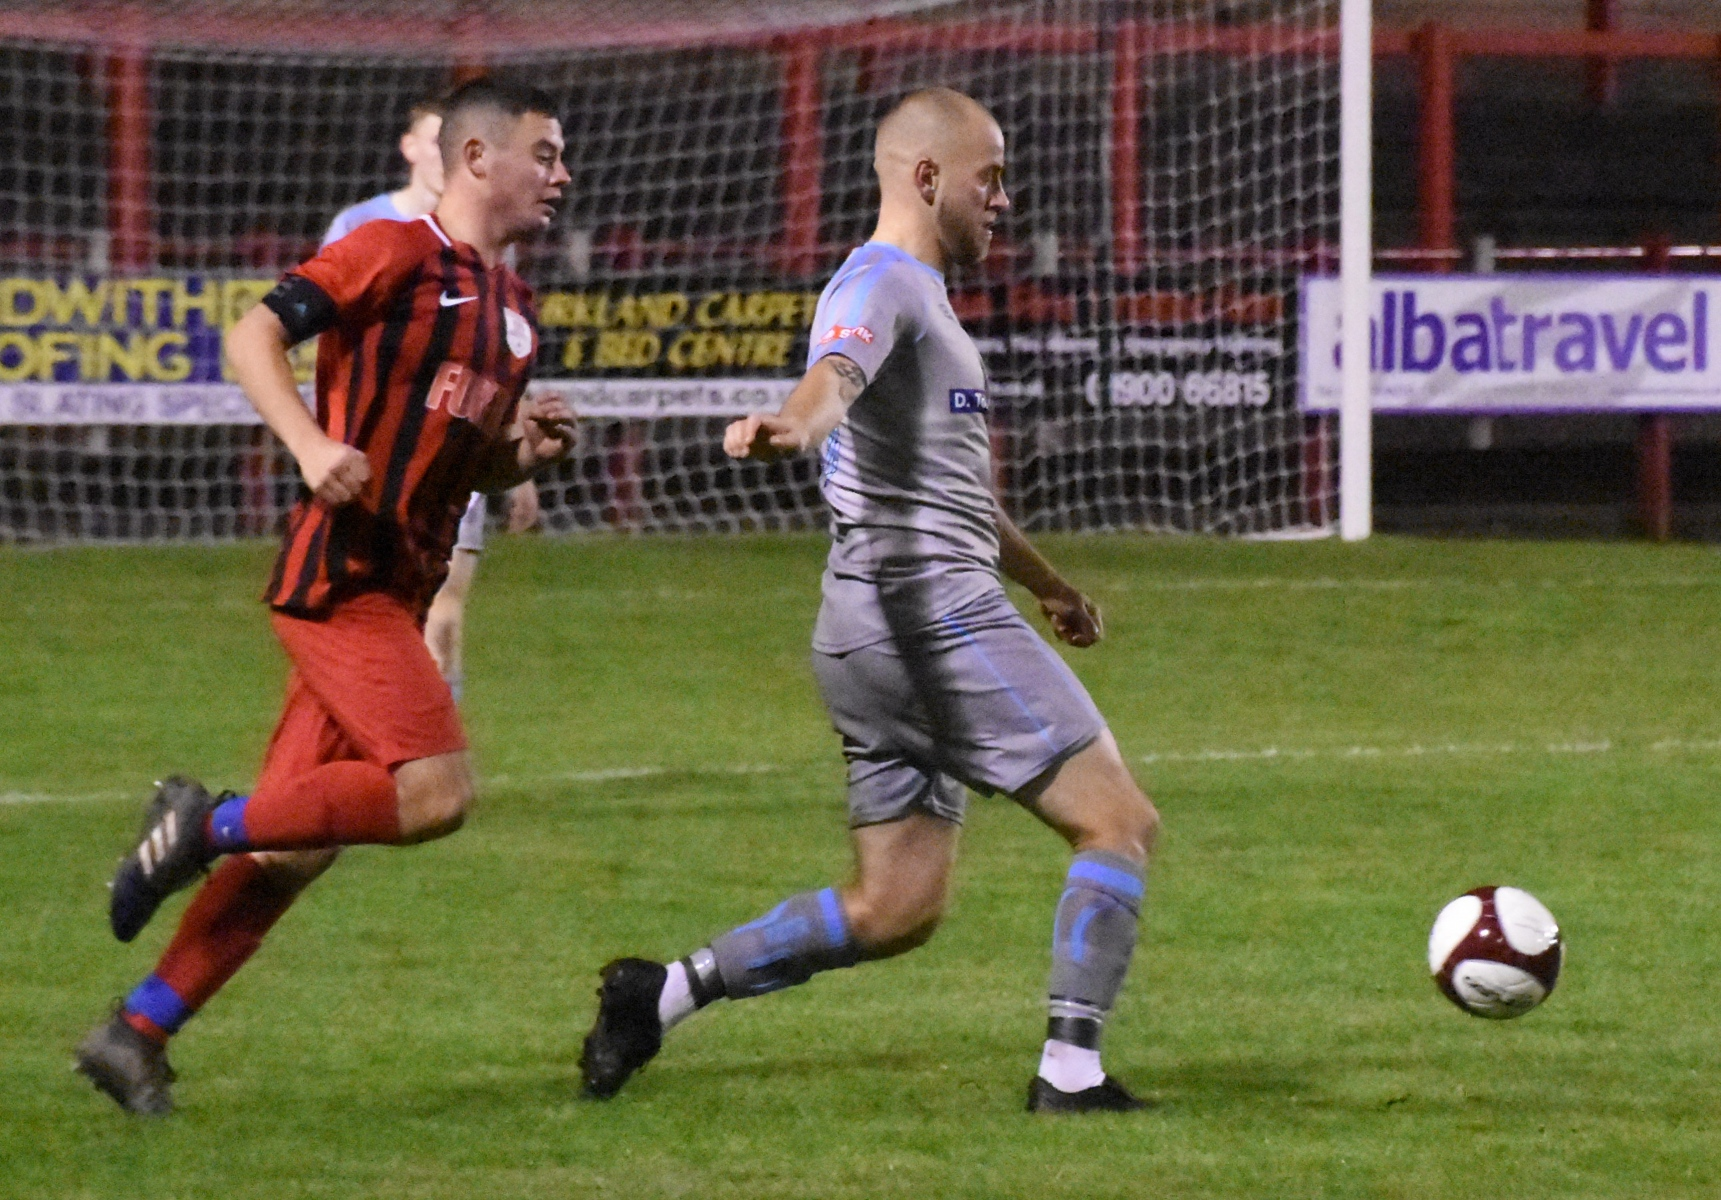 Danny-Grainger-put-on-his-boots-for-the-game-against-Moor-Row-Ben-Chakllis